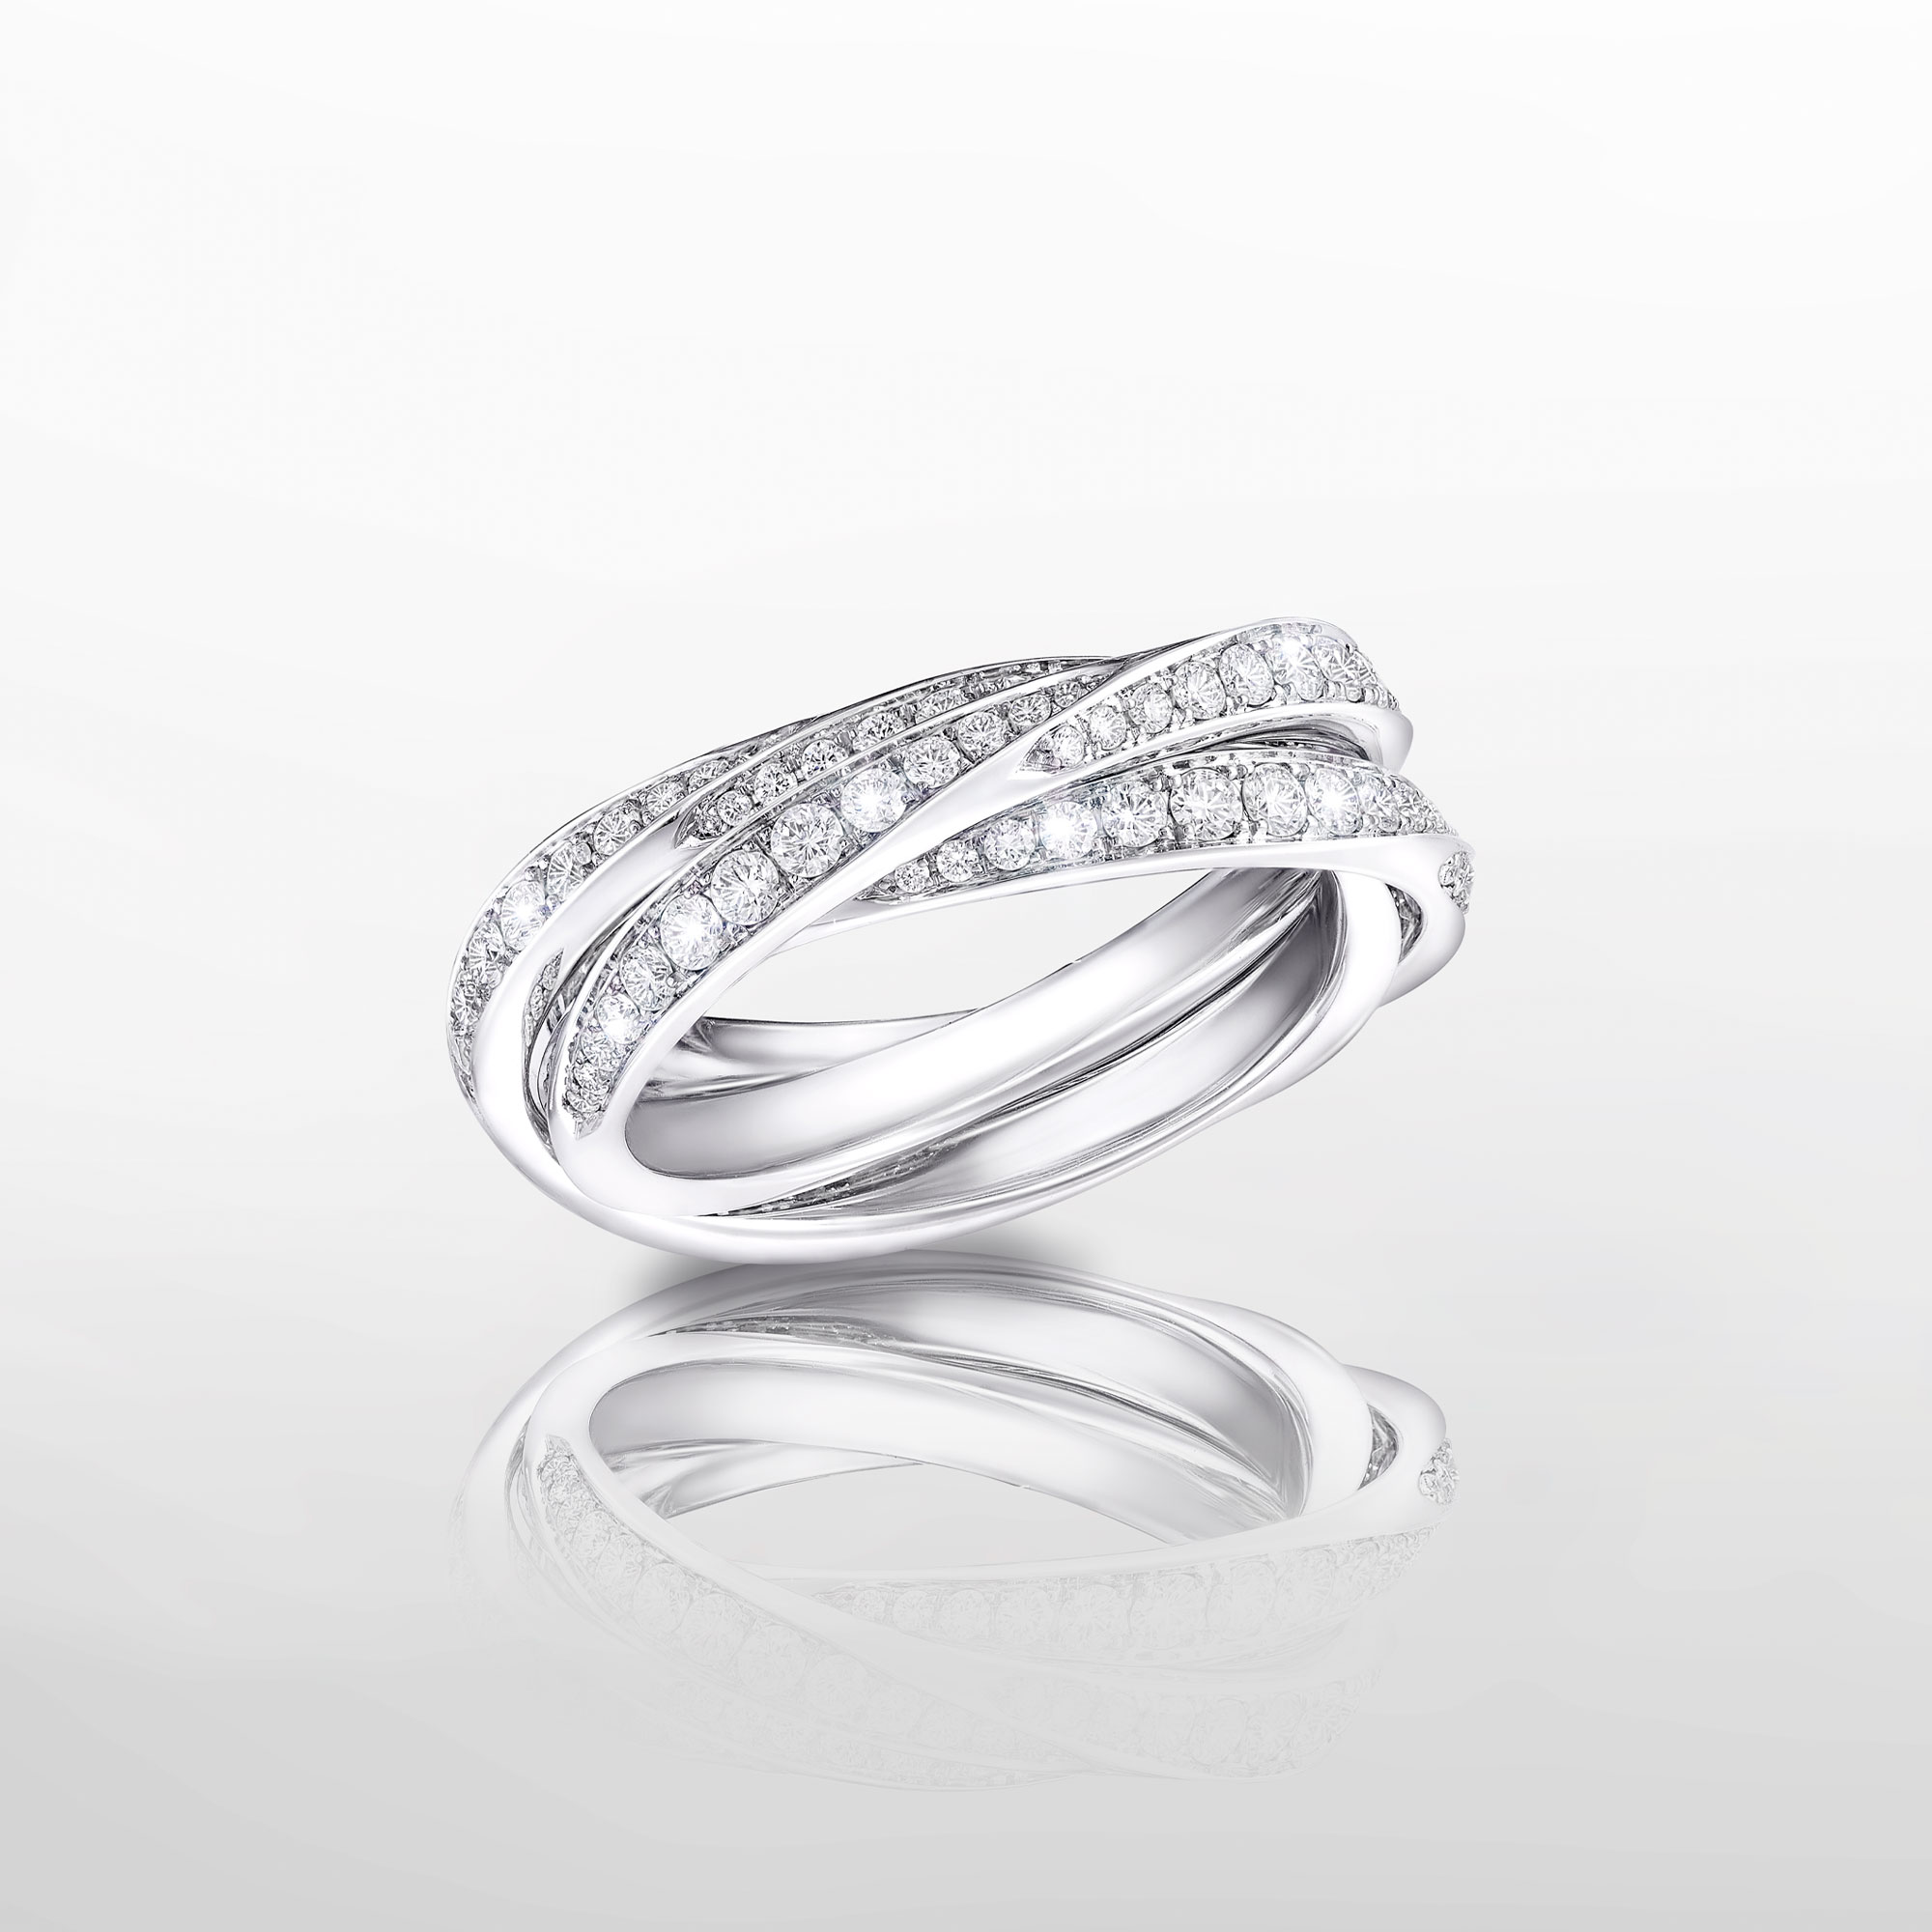 Triple Spiral Pavé Diamond Ring from the Graff Spiral Jewellery Collection